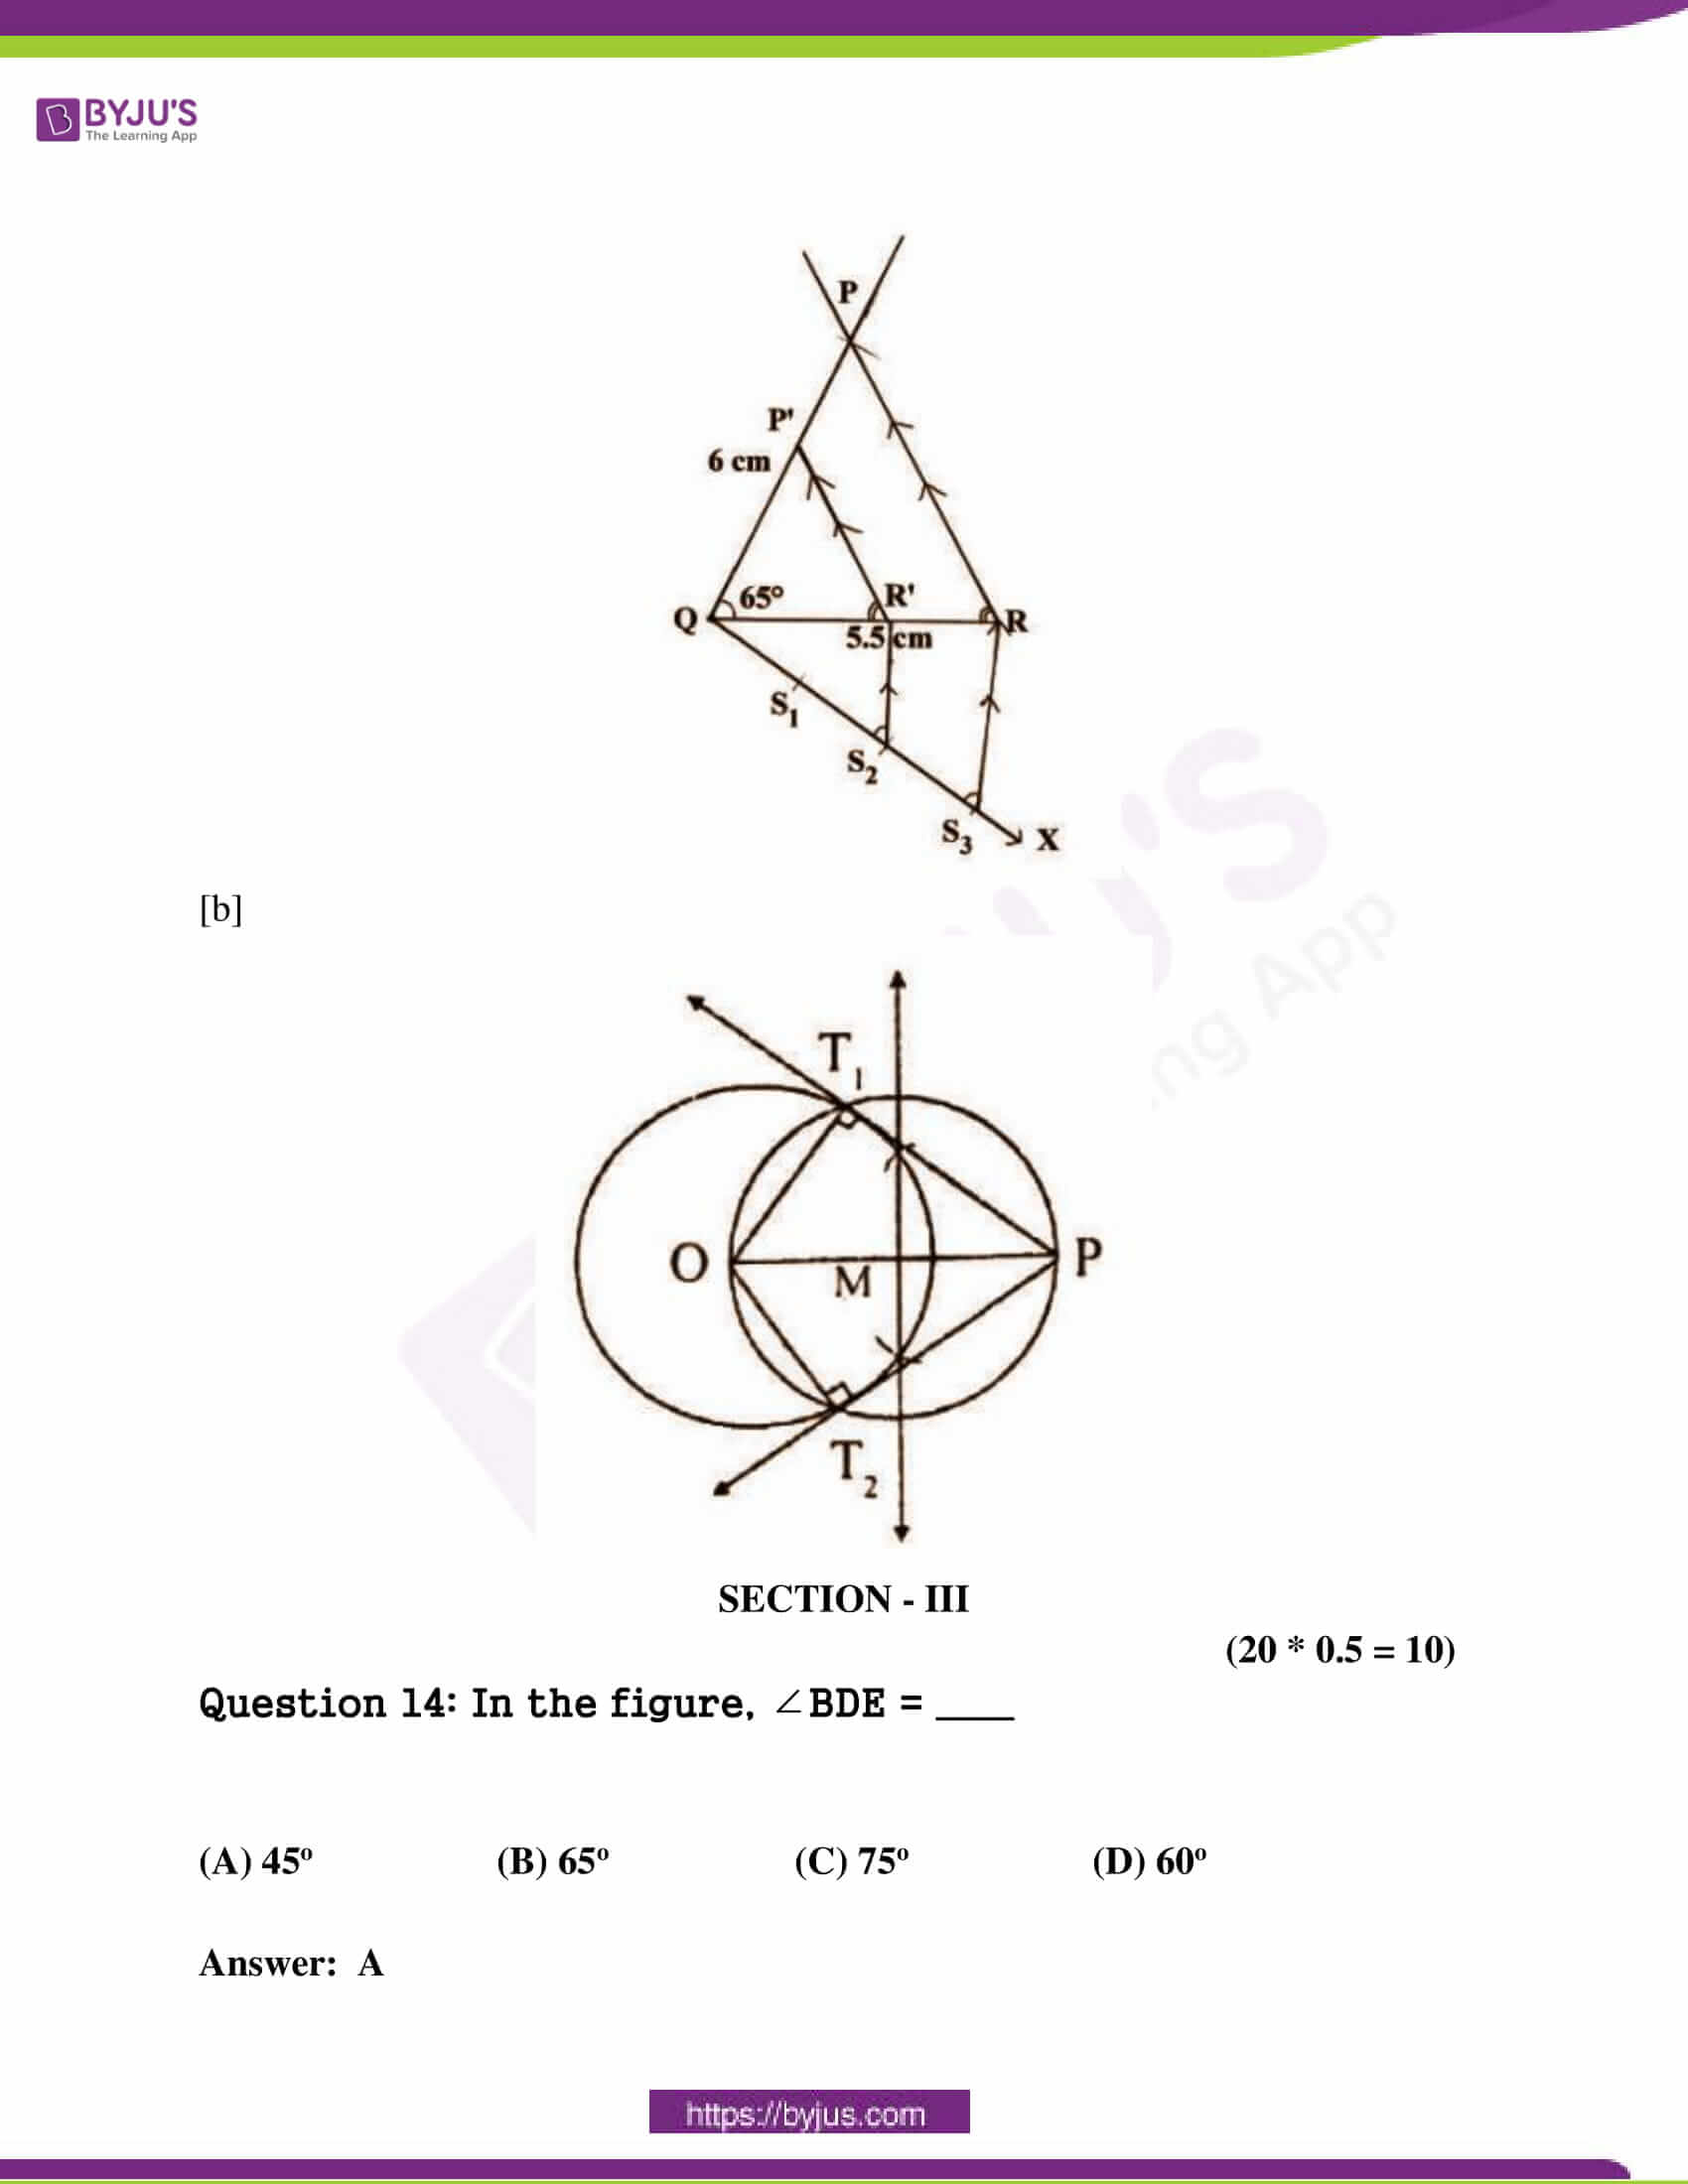 ap class 10 maths question paper 2 sol march 2019 10